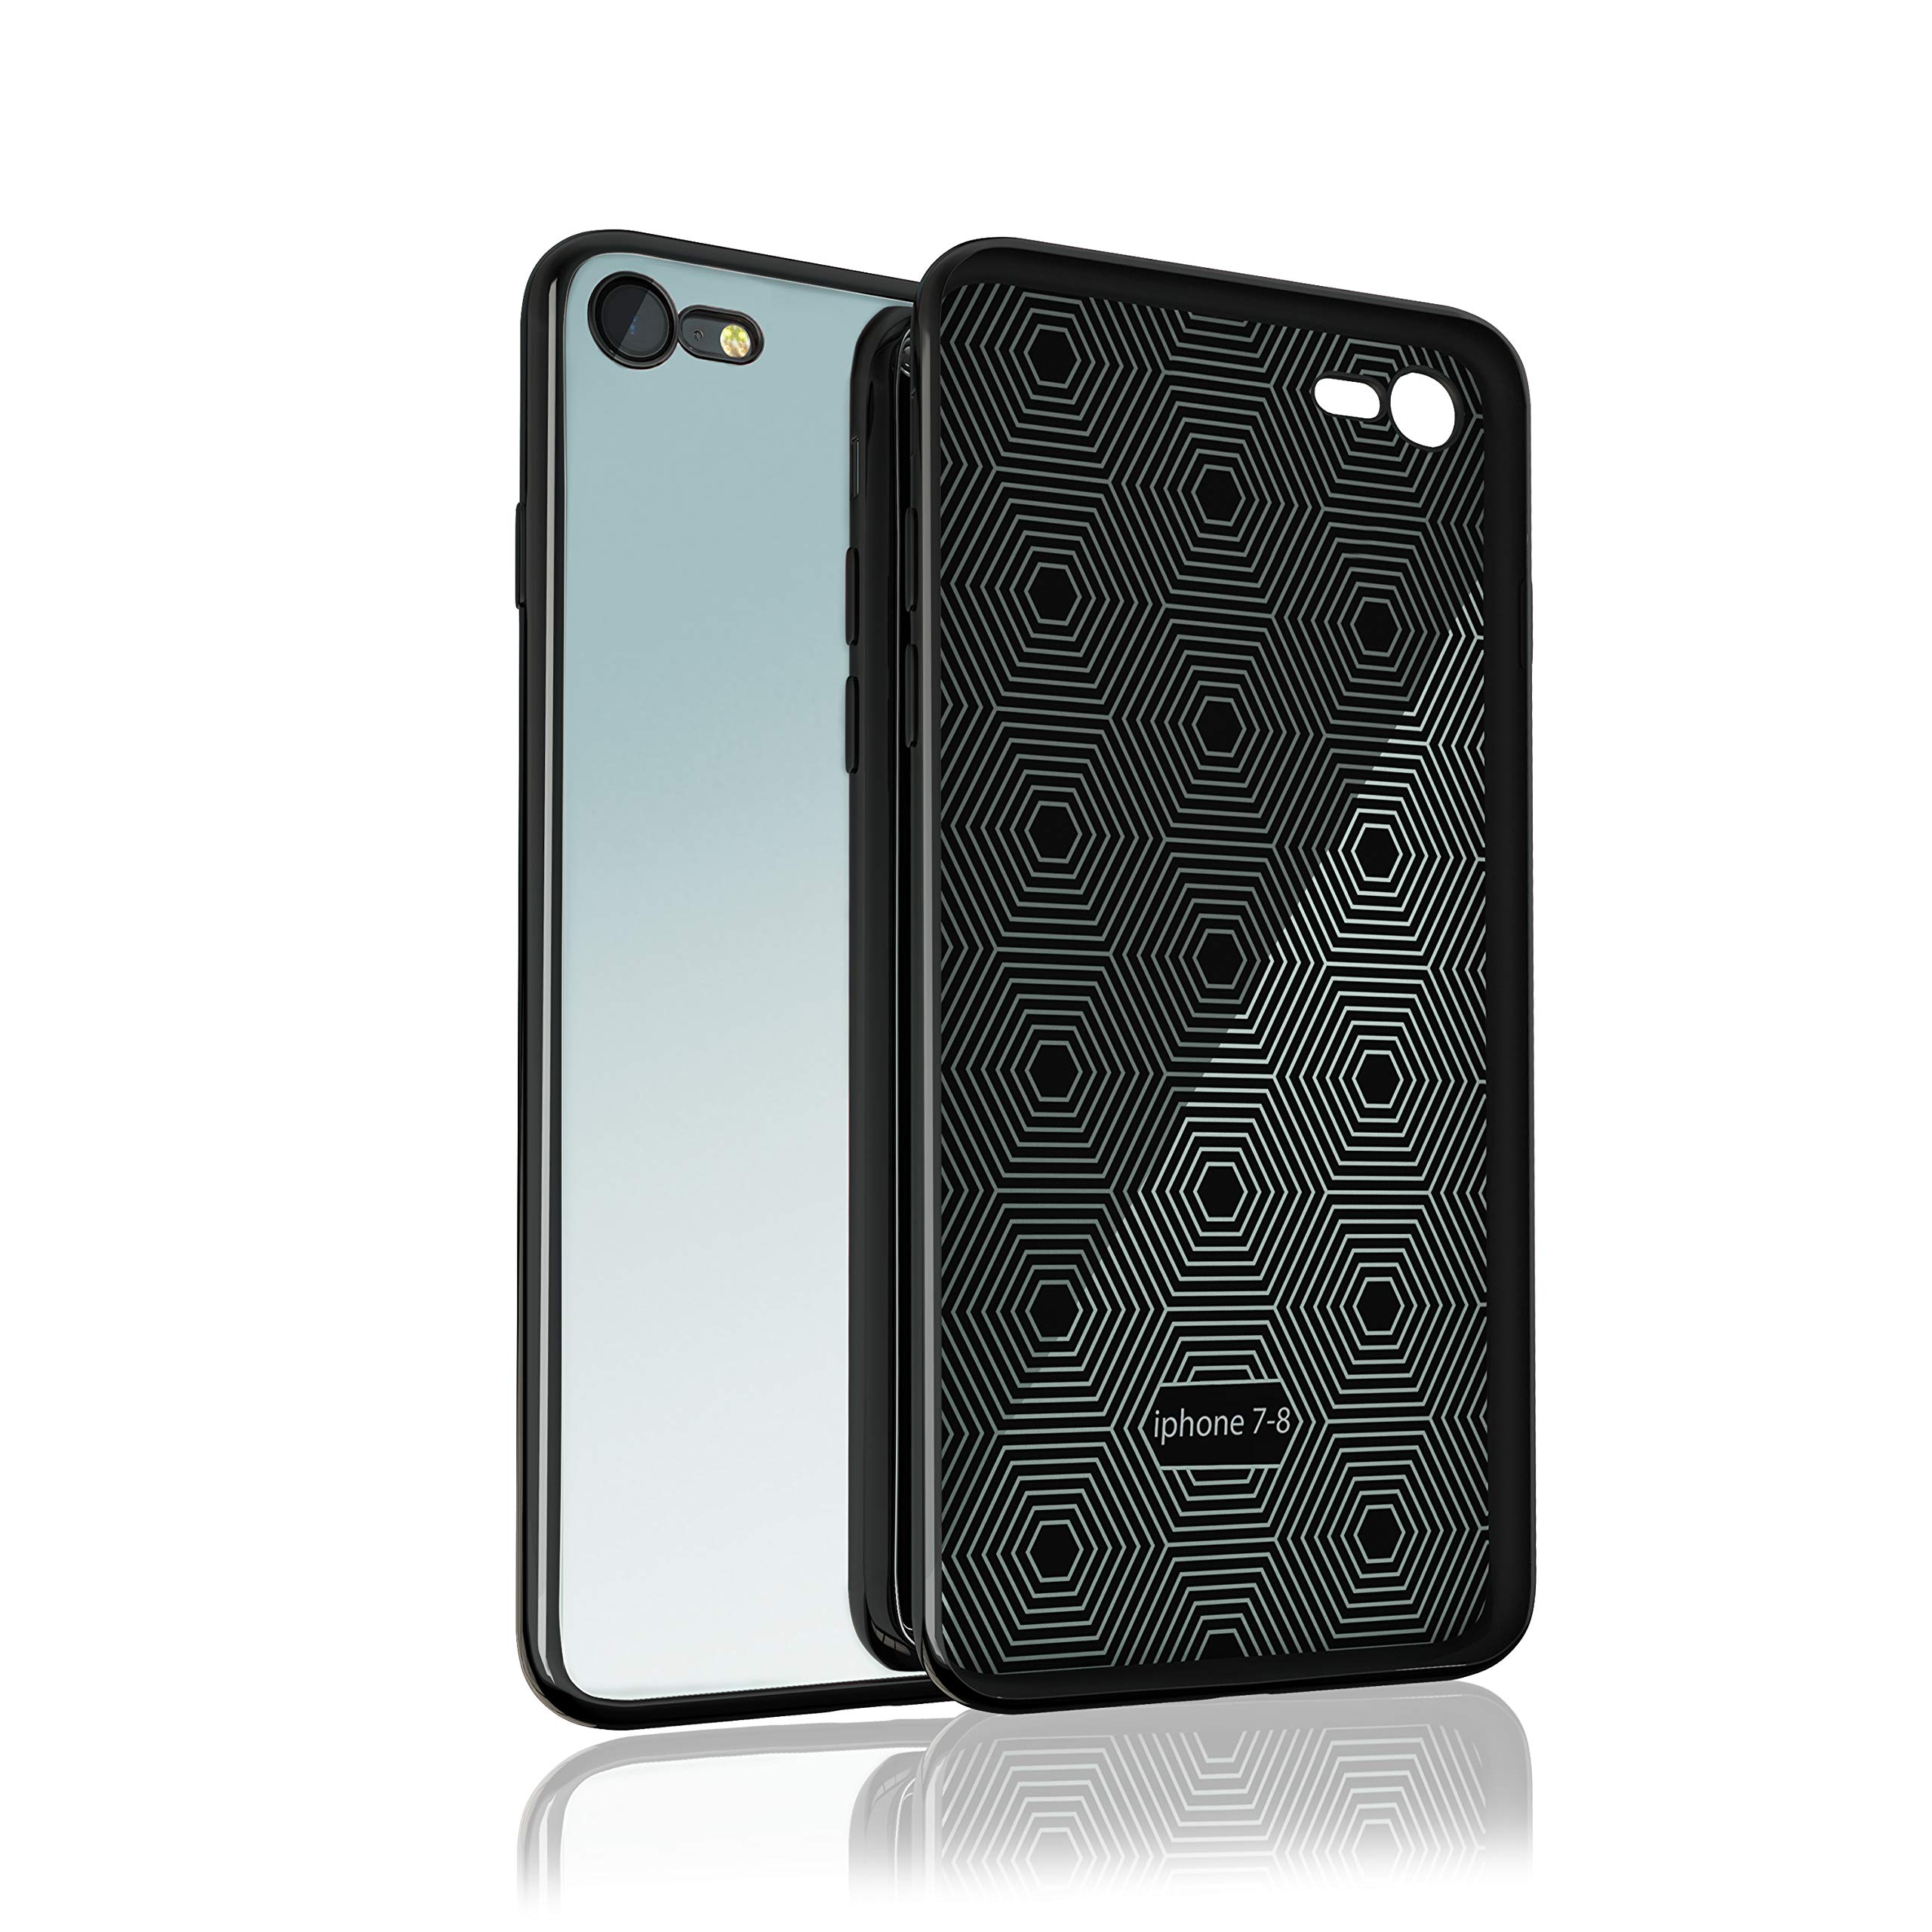 iPhone 7 / iPhone 8 Mirror Case with Anti-Scratch 9H Tempered Glass and Soft TPU Bumper, Shockproof, Wireless Charging Compatible - for iPhone 7 / iPhone 8 - Black